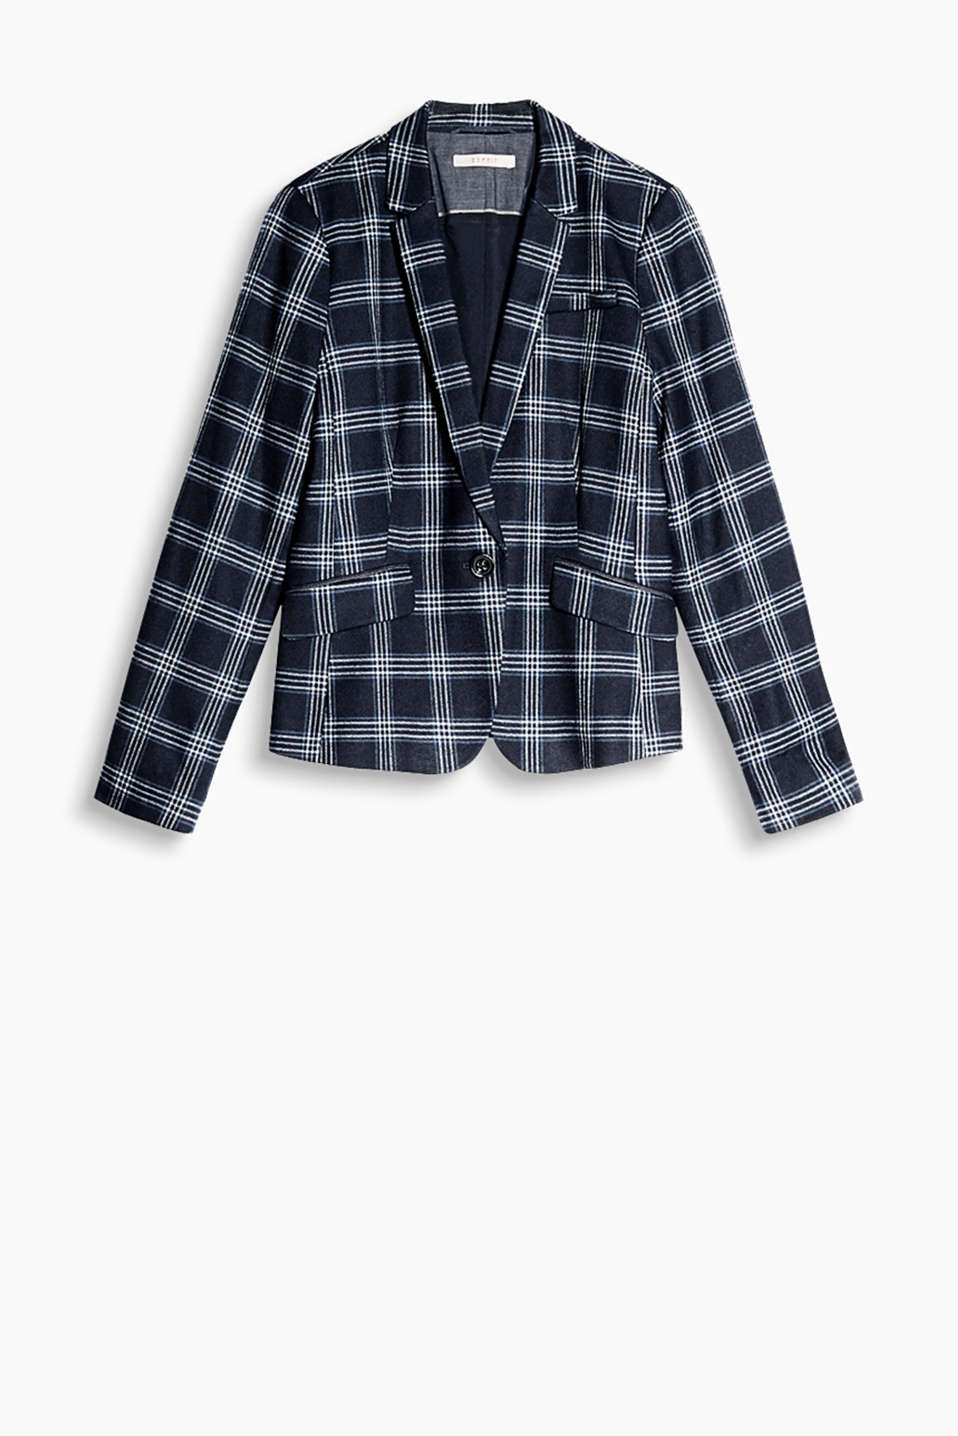 Sophisticated stretch blazer with chic checks and elbow patches